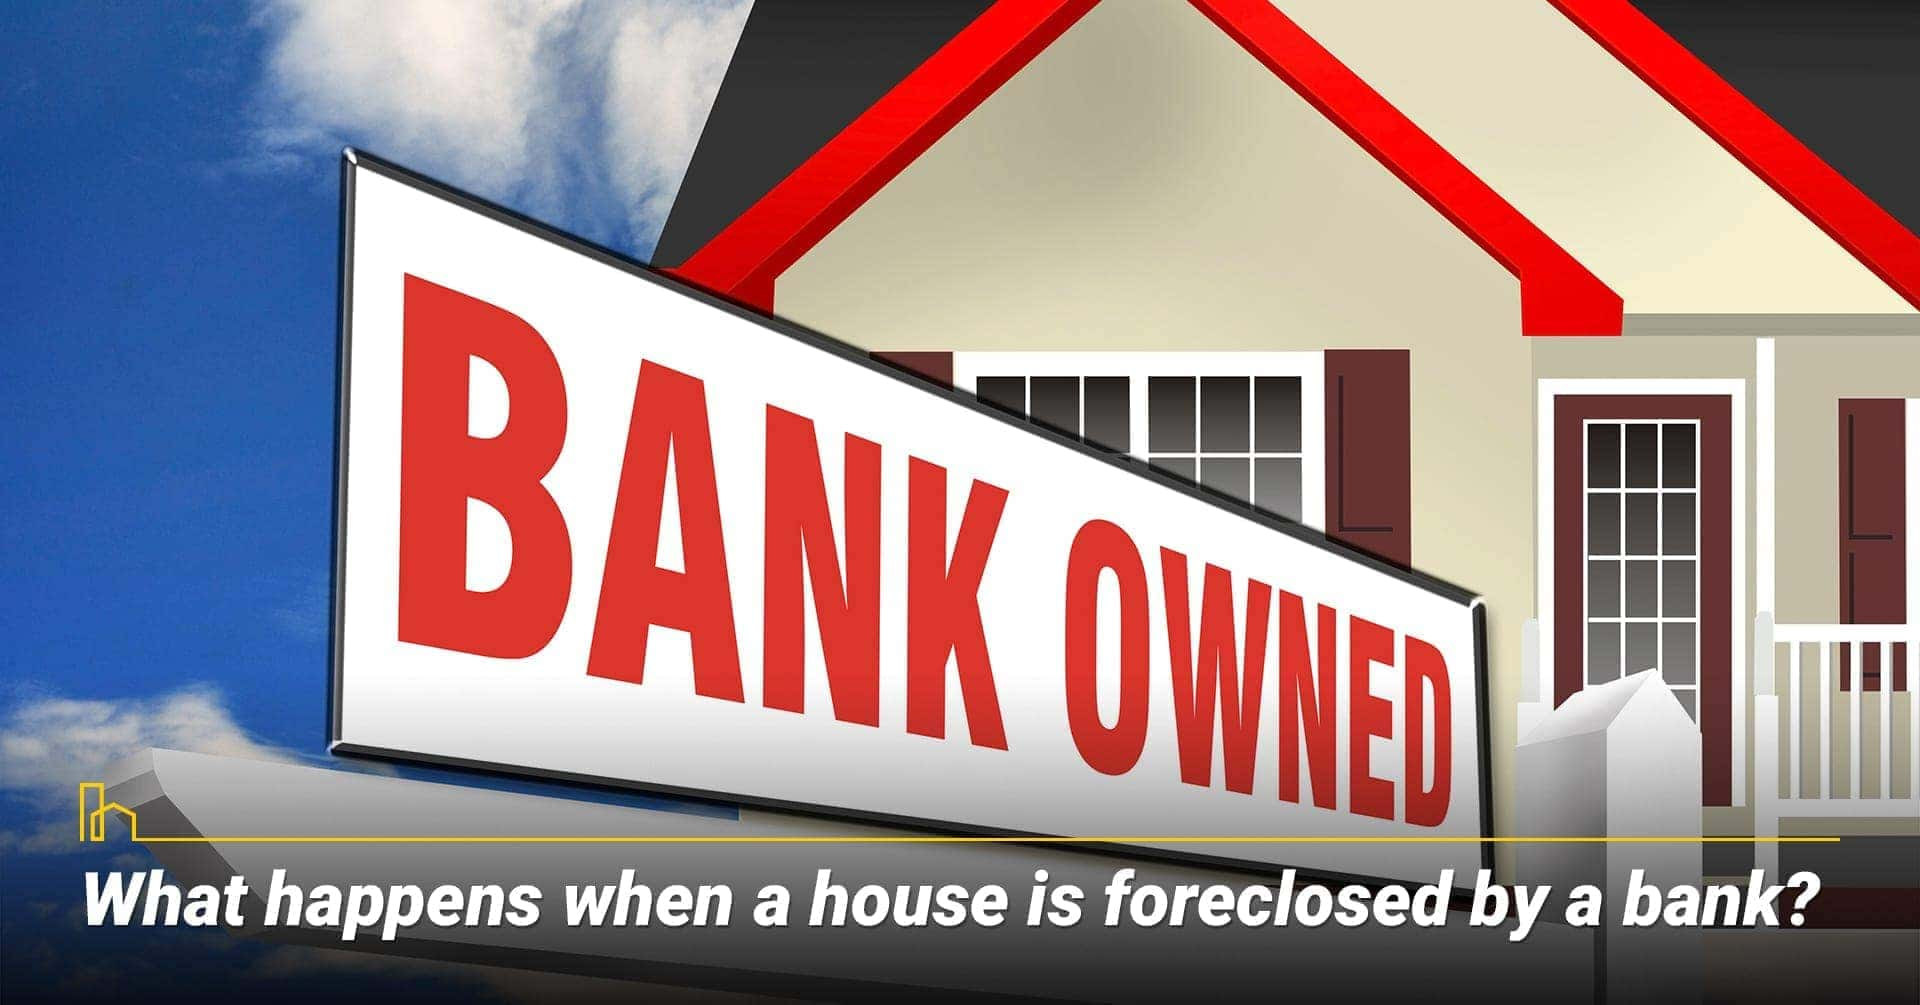 What happens when a house is foreclosed by a bank? the house is owned by the bank